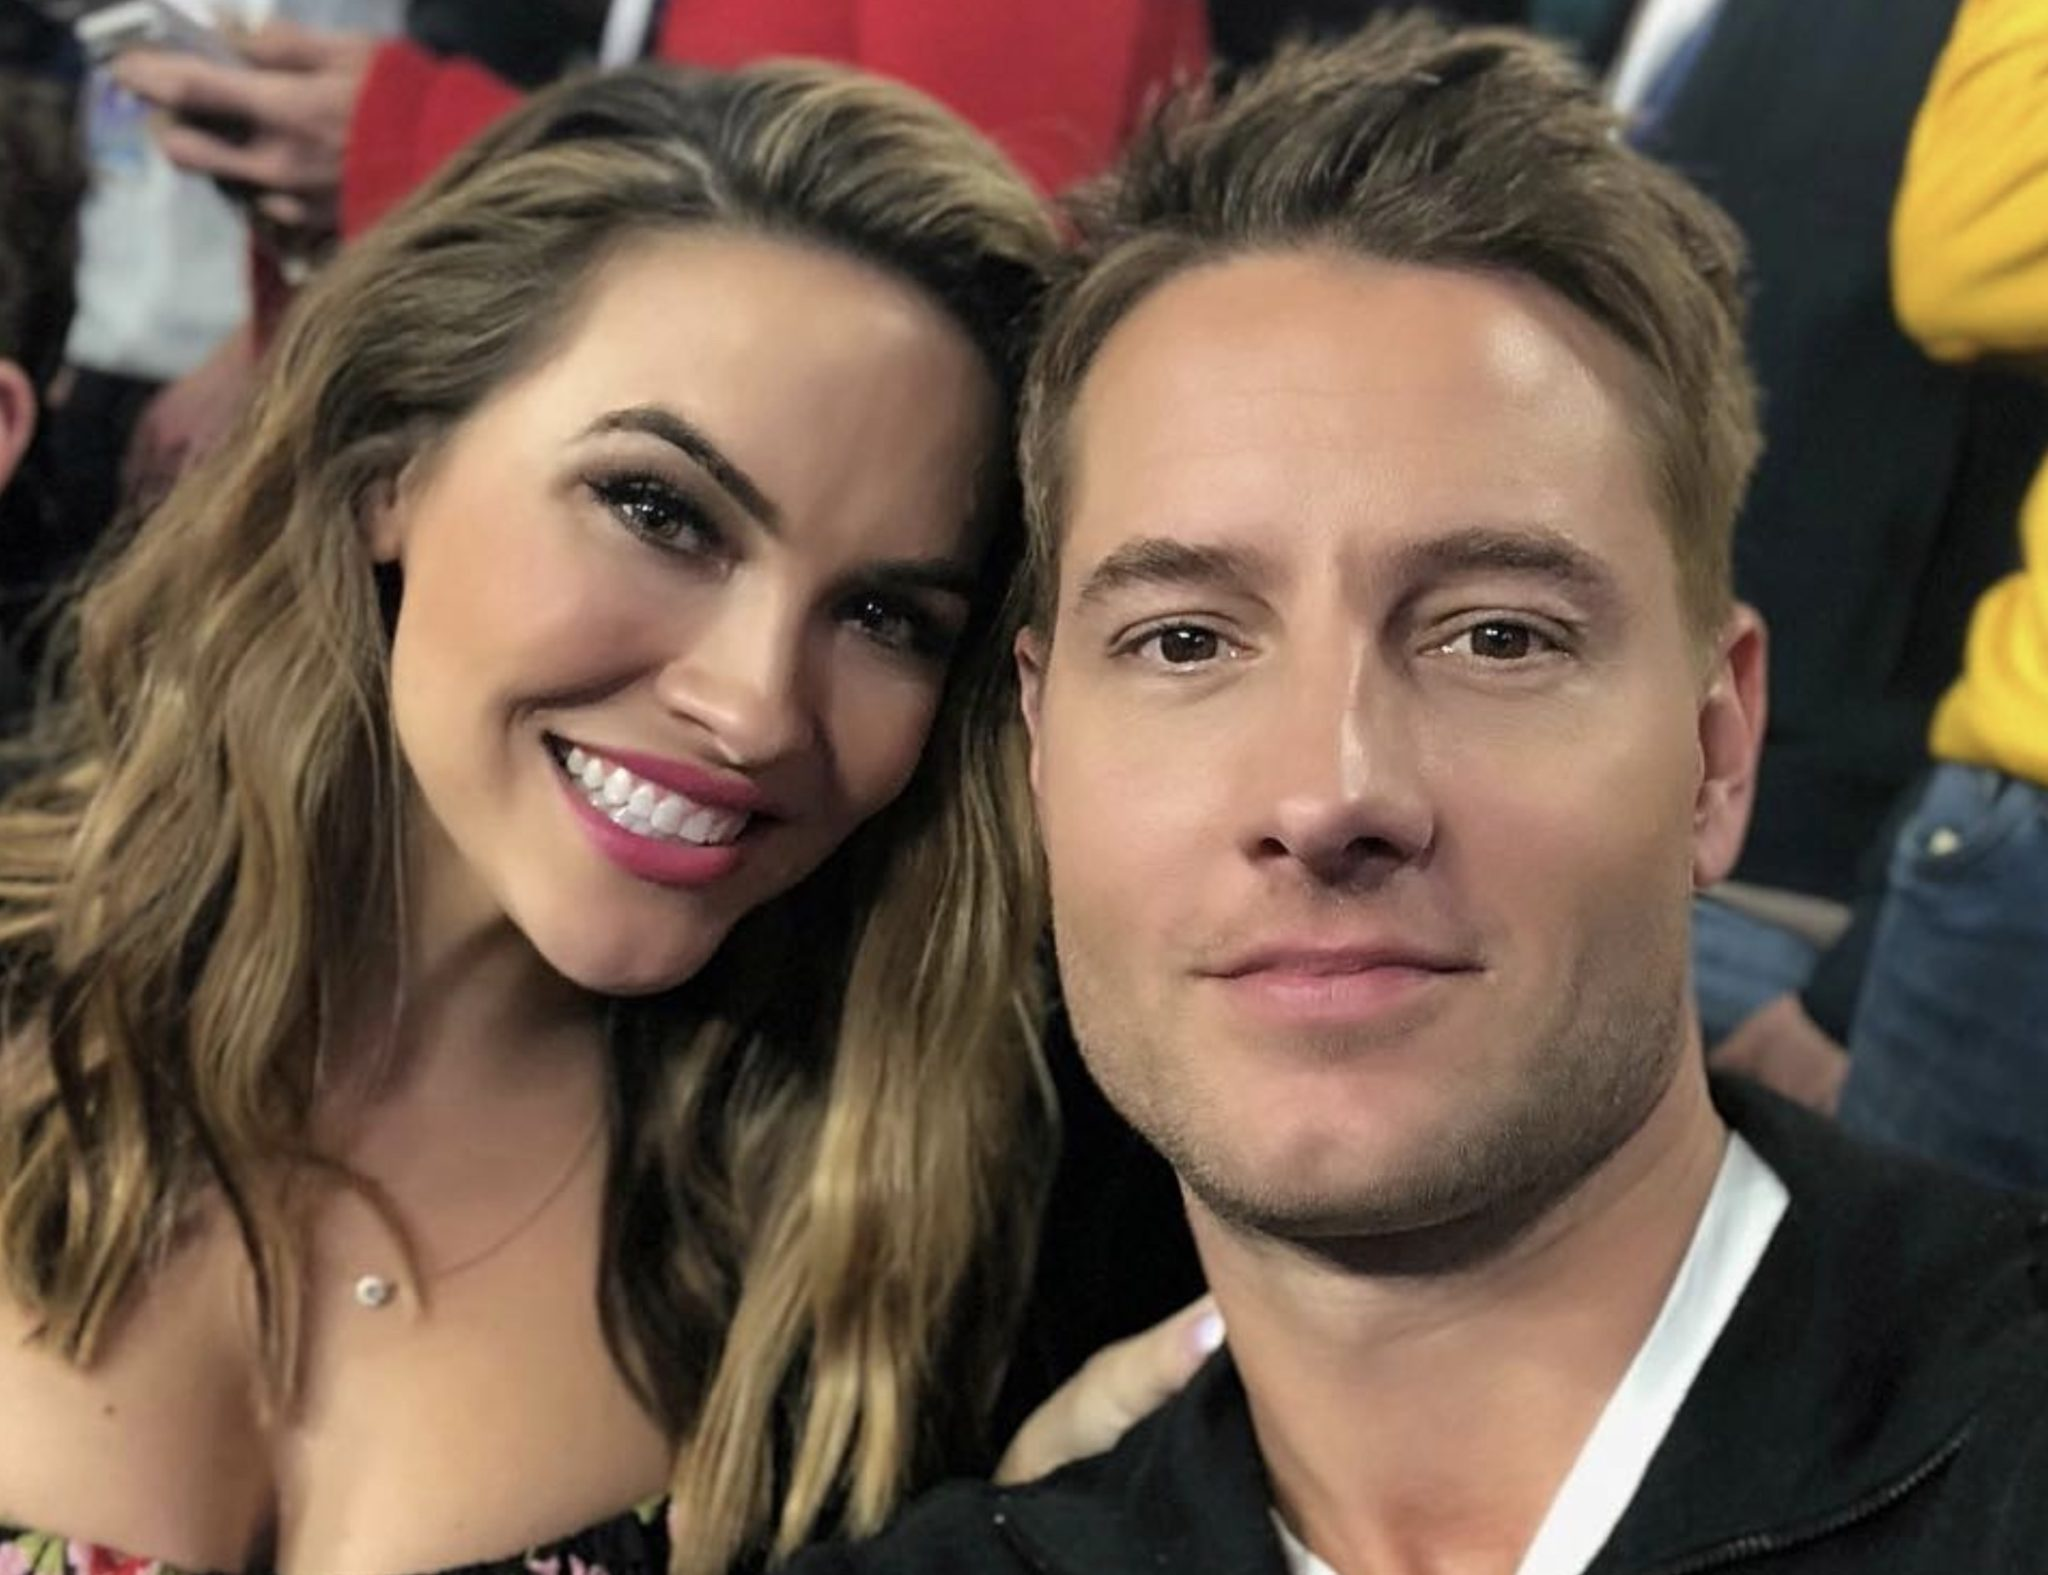 Chrishell Stause, Justin Hartley, This Is Us-https://www.instagram.com/p/Bey8u8gh5tR/